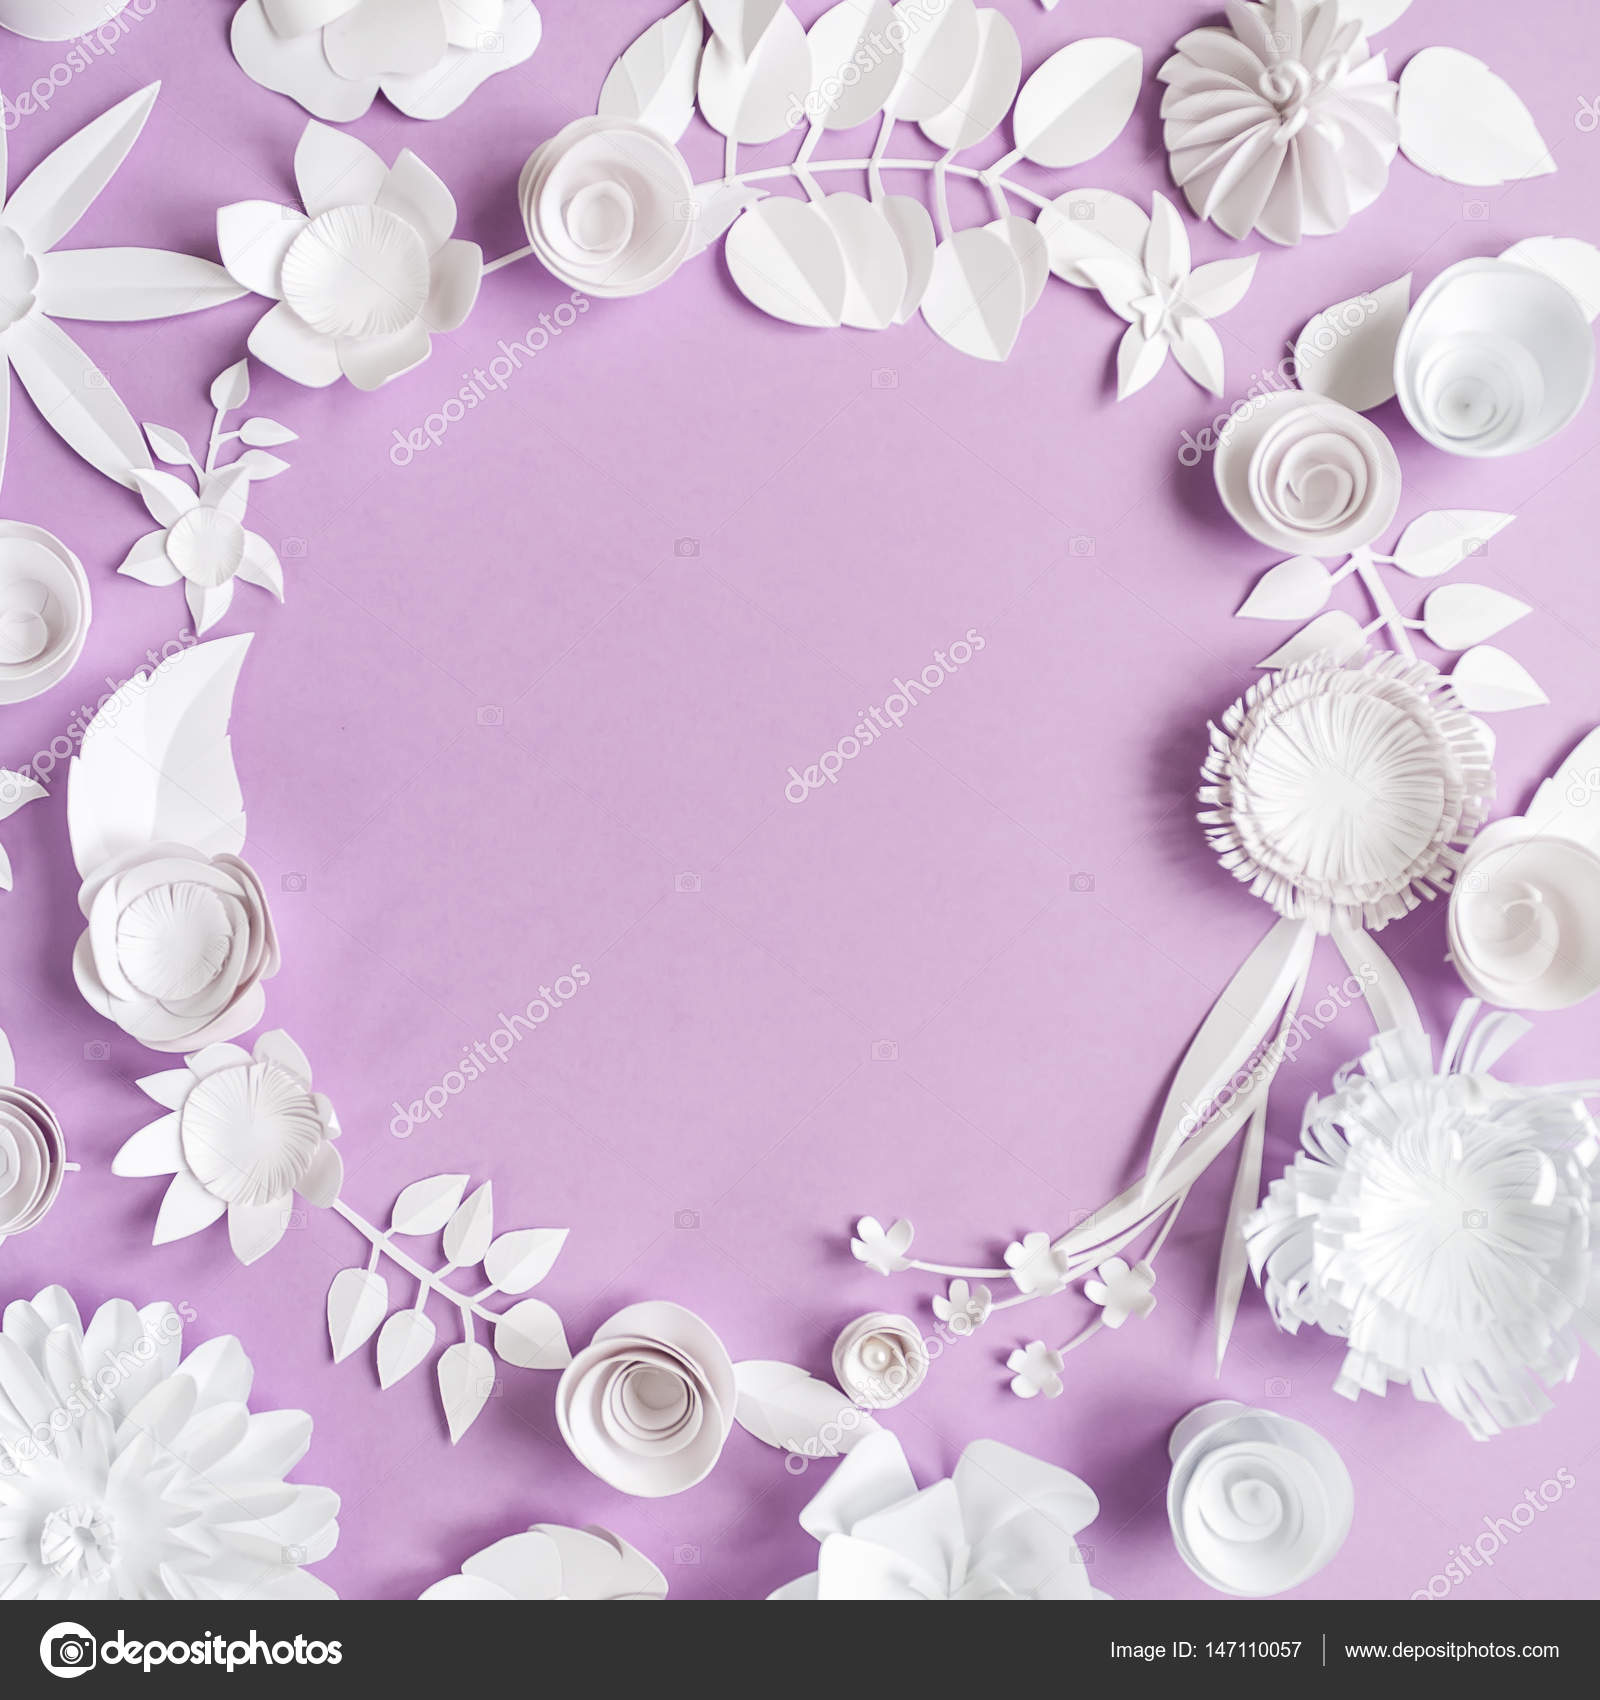 Round Frame With Paper Flowers On The Purple Background Stock